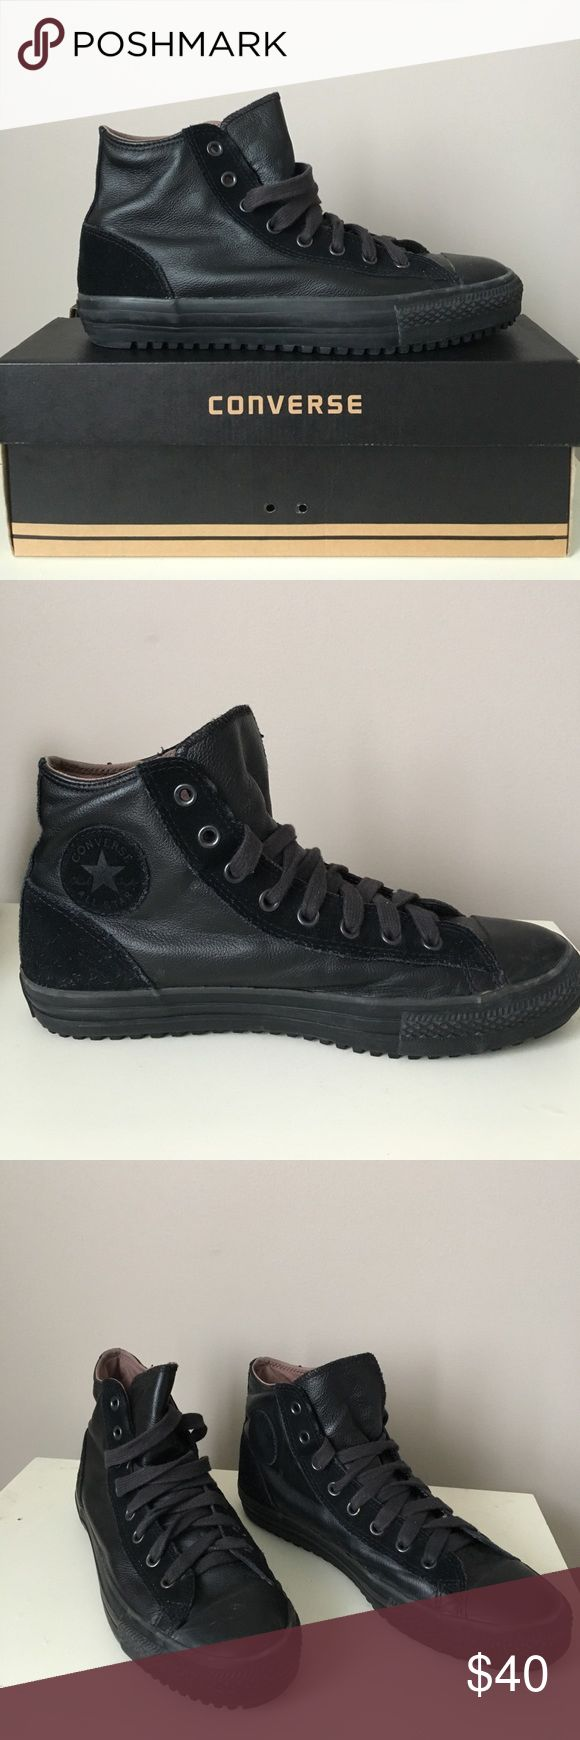 BRAND NEW Leather Converse High Tops Brand new, in box Converse high top sneakers in black leather with black suede high tops Converse Shoes Sneakers